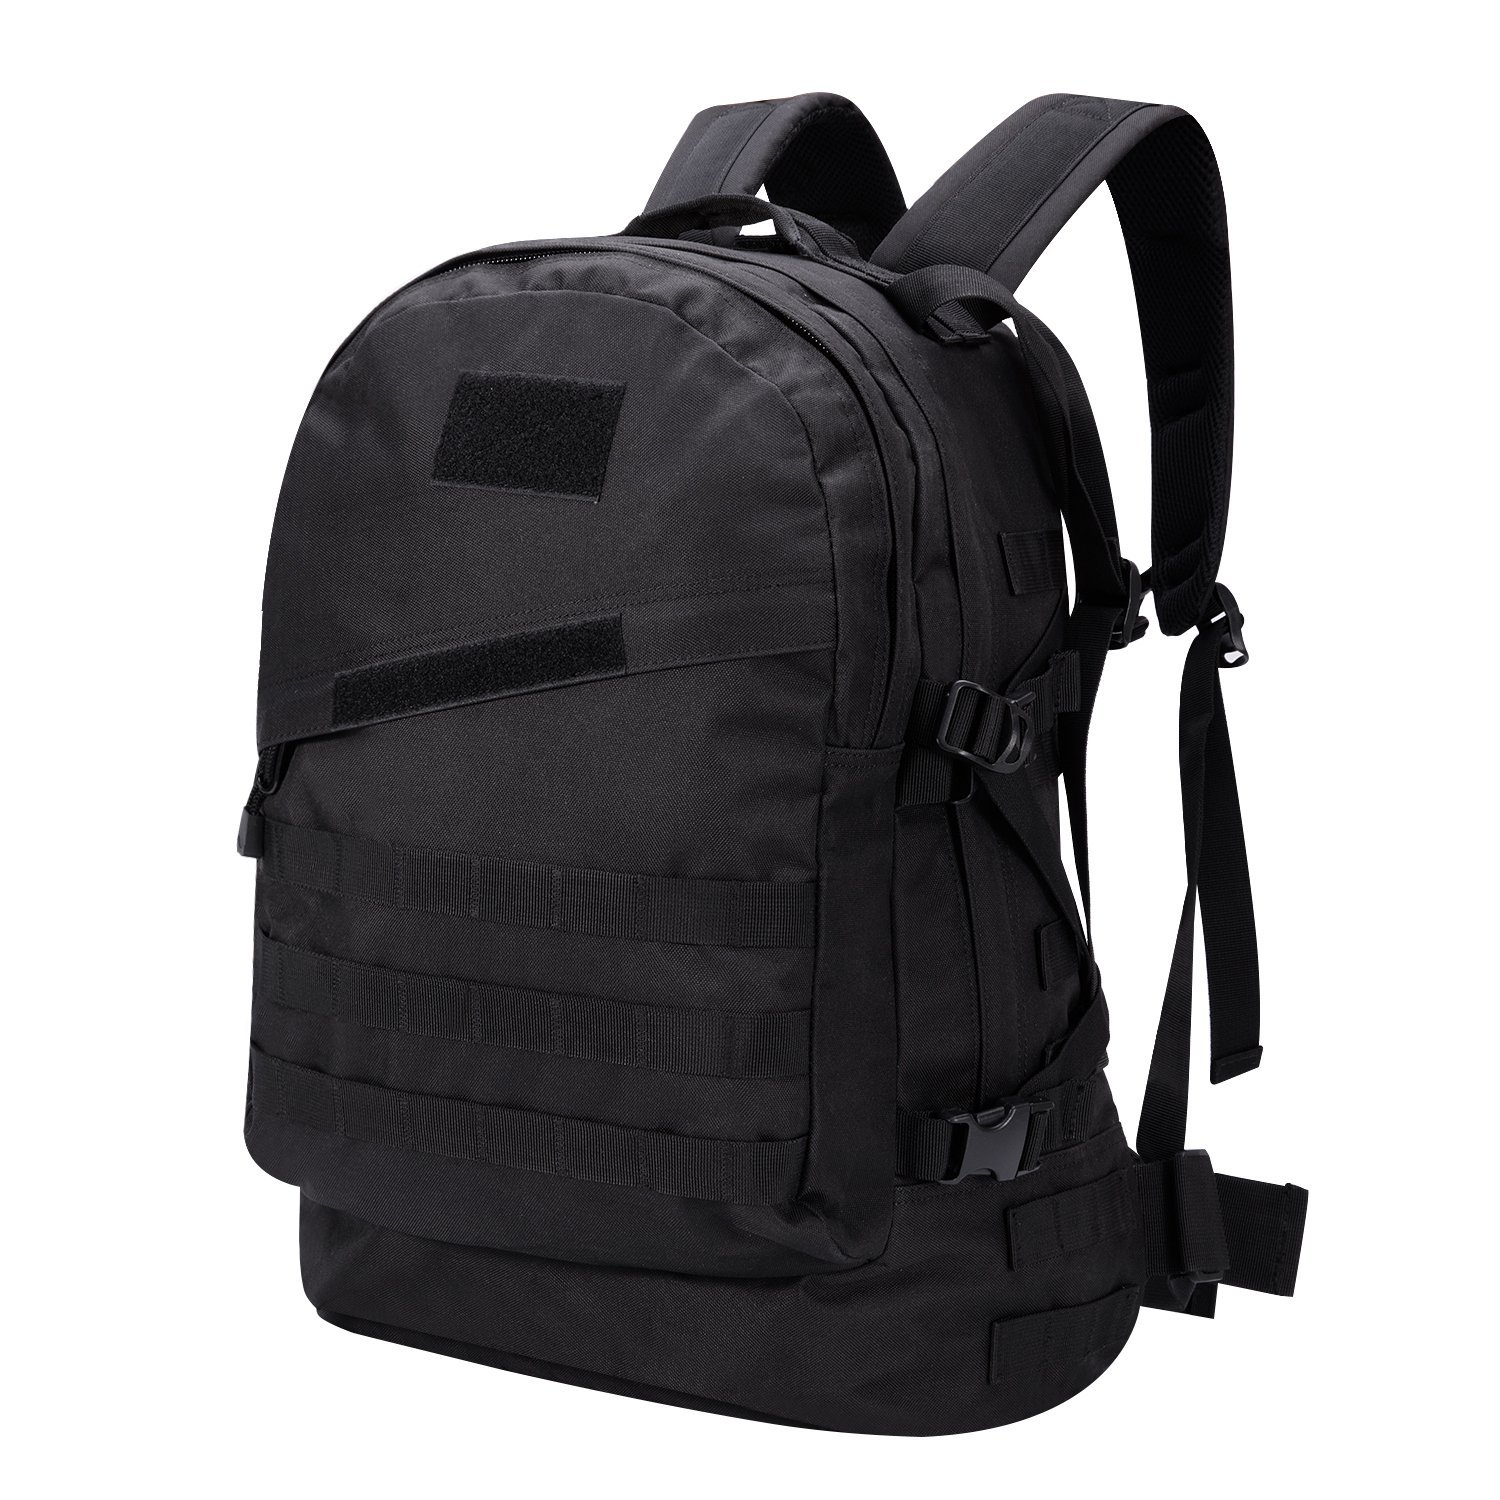 6dab12422c88 Buy 45L Tactical Military Backpack